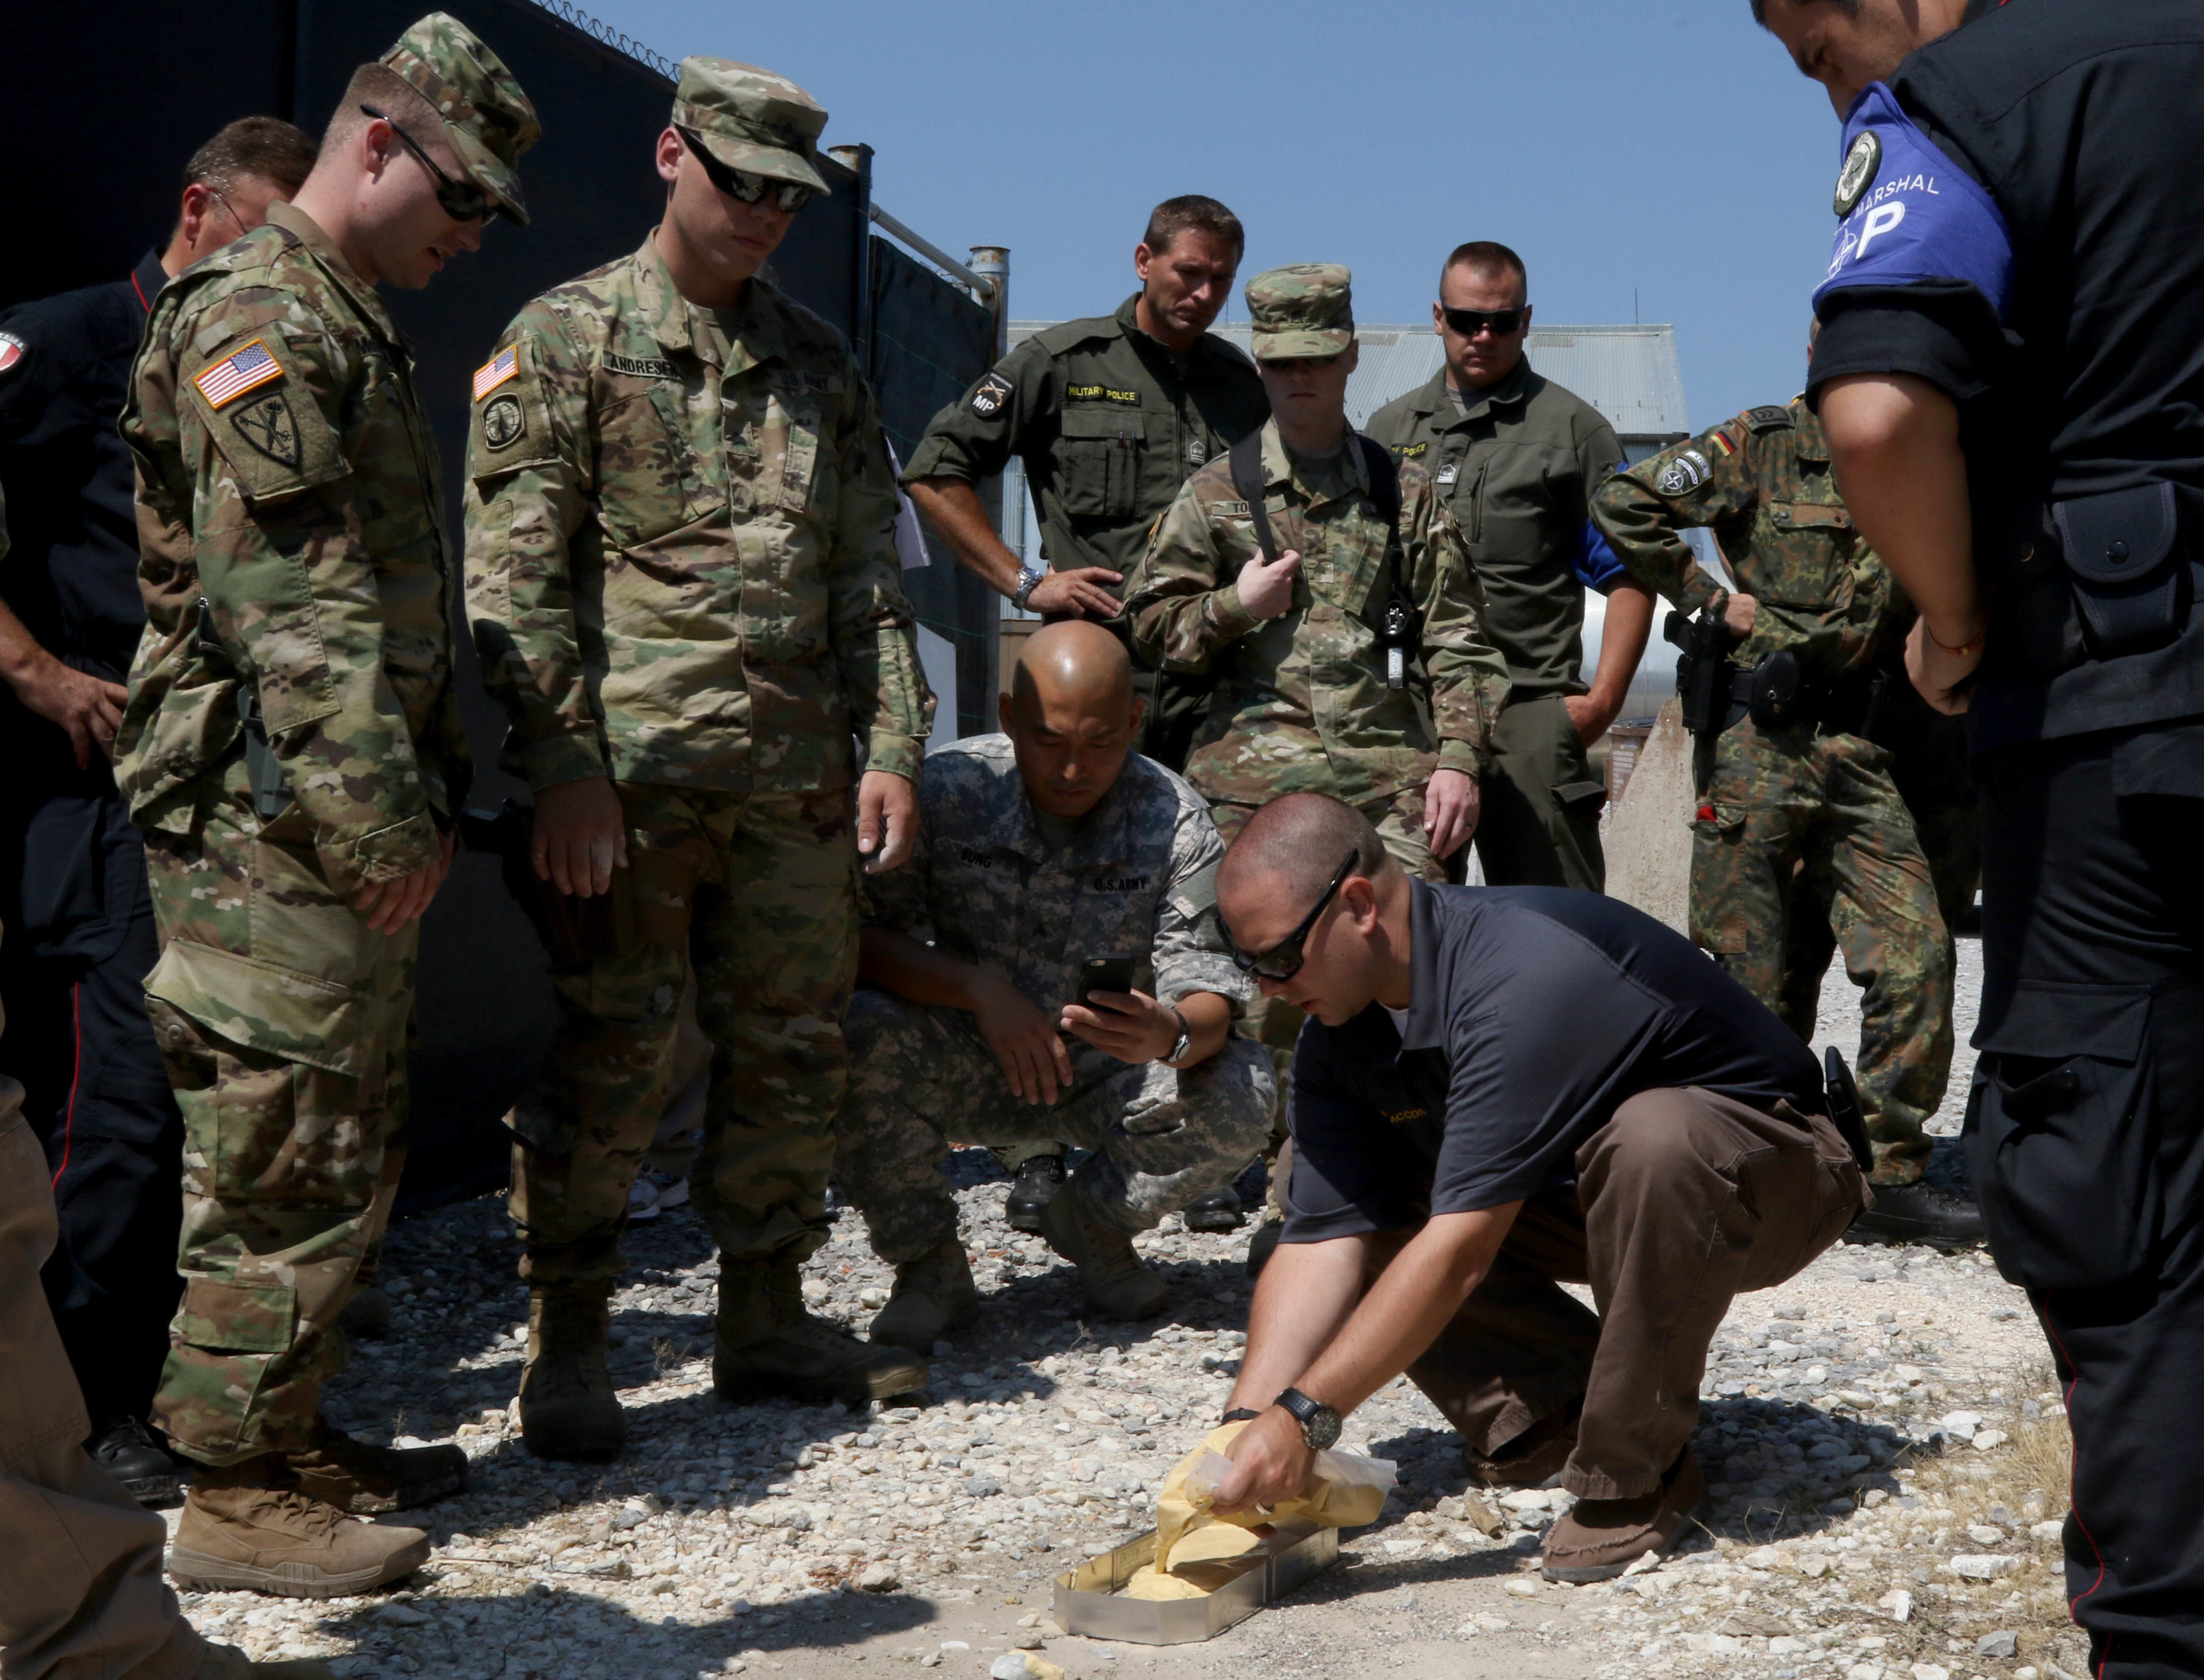 A criminal investigation special agent, from U.S. Army Europe, shows how to properly cast a foot impression to service members from NATO's Kosovo Force during a Crime Scene Investigation course held on Camp Bondsteel, Kosovo, July 13, 2016. (U.S. Army photo by: Staff Sgt. Thomas Duval, Multinational Battle Group-East public affairs)